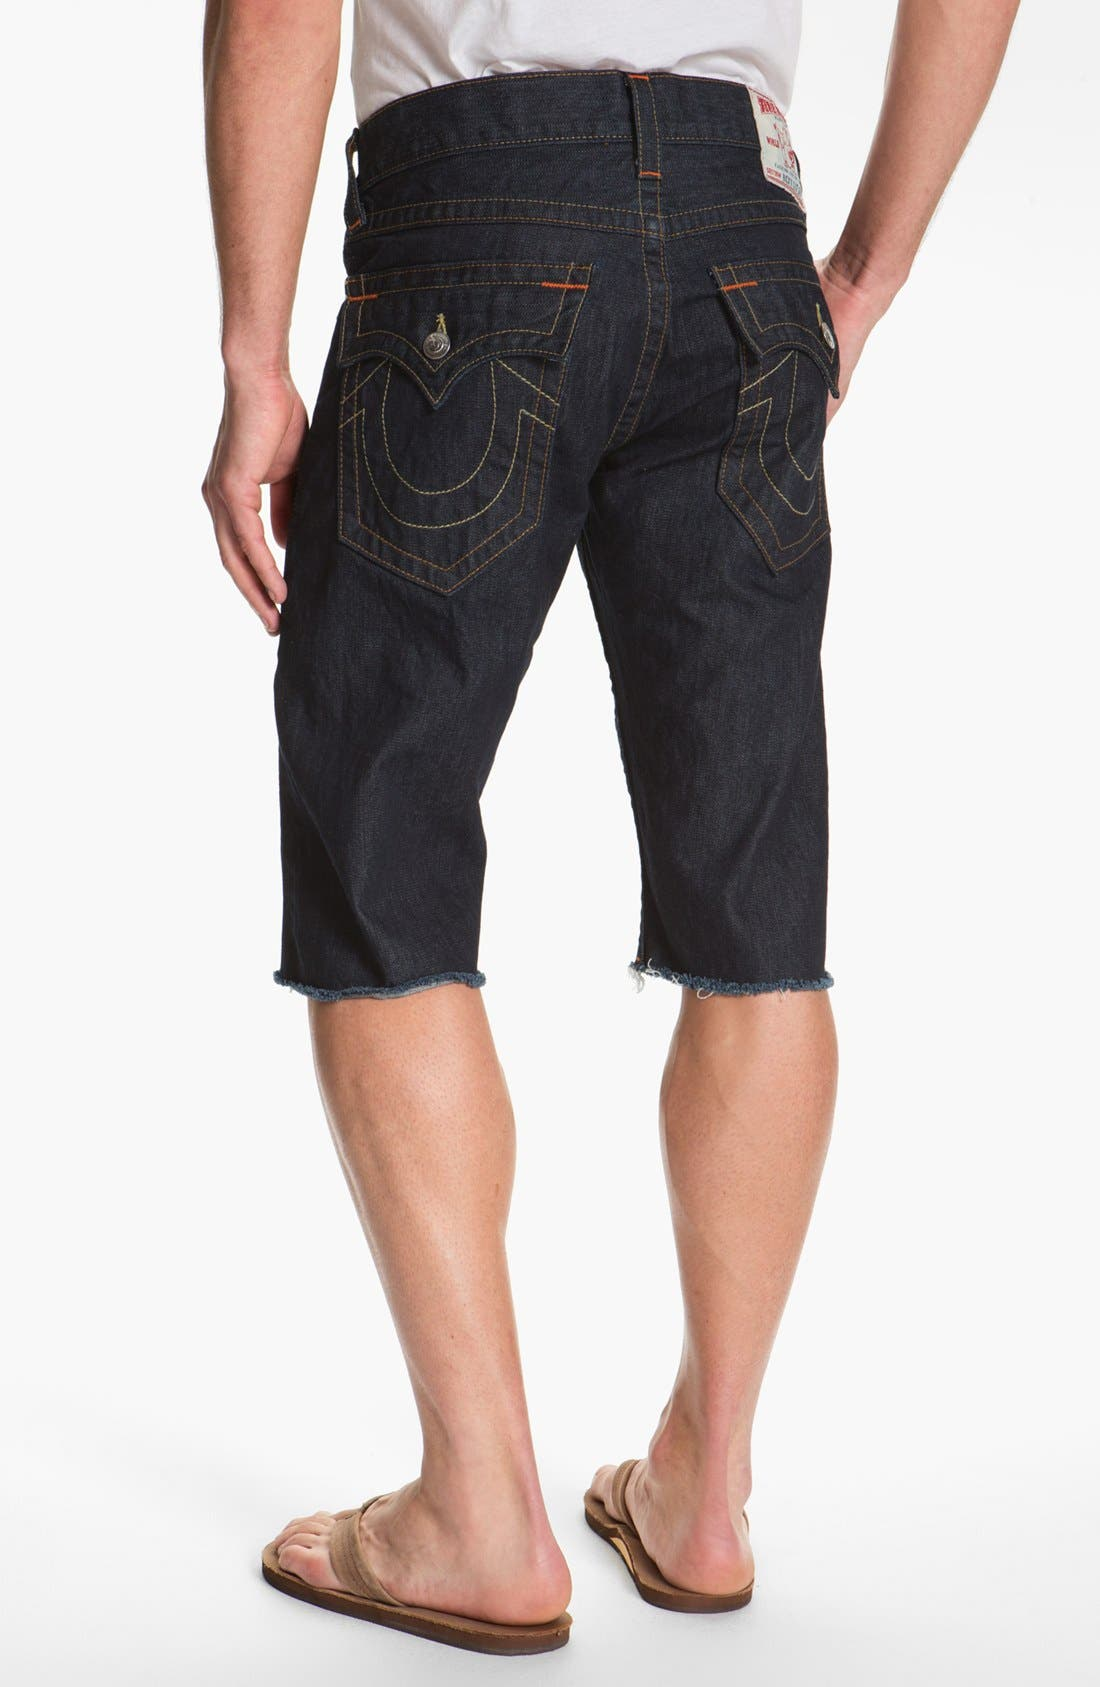 Alternate Image 1 Selected - True Religion Brand Jeans 'Ricky' Cut Off Denim Shorts